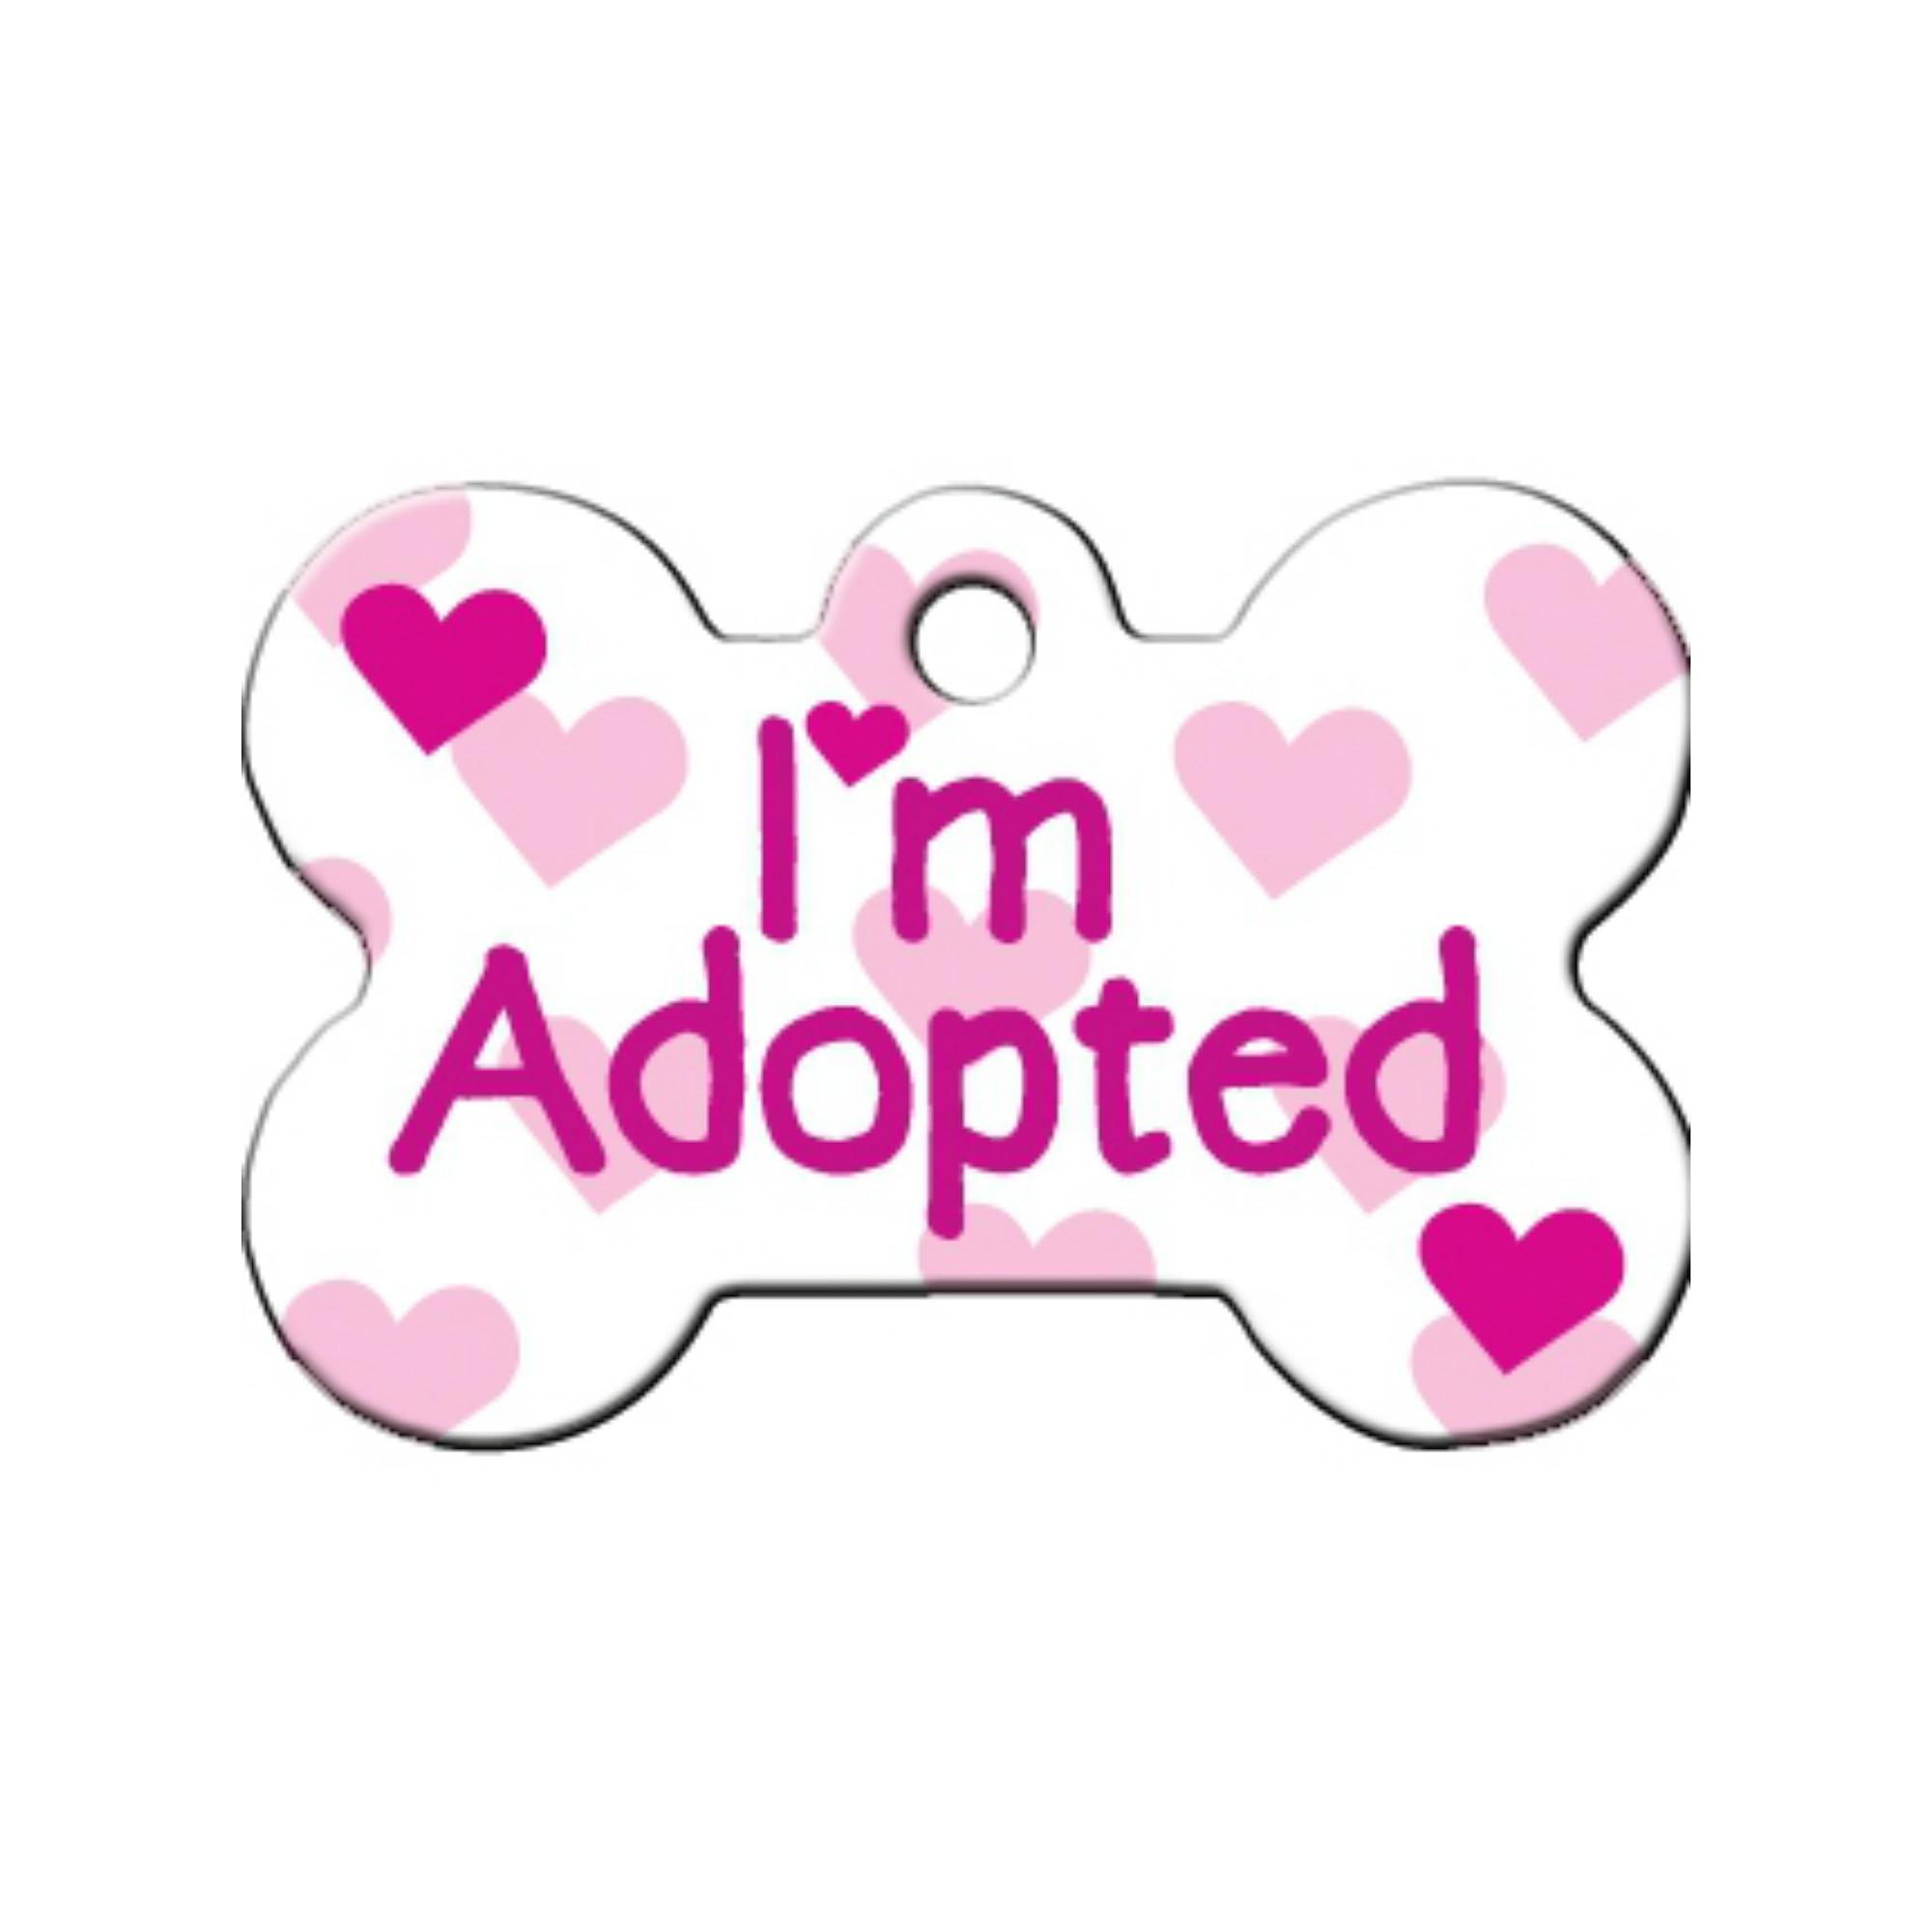 I'm Adopted Bone Large Engravable Pet I.D. Tag - Pink/White